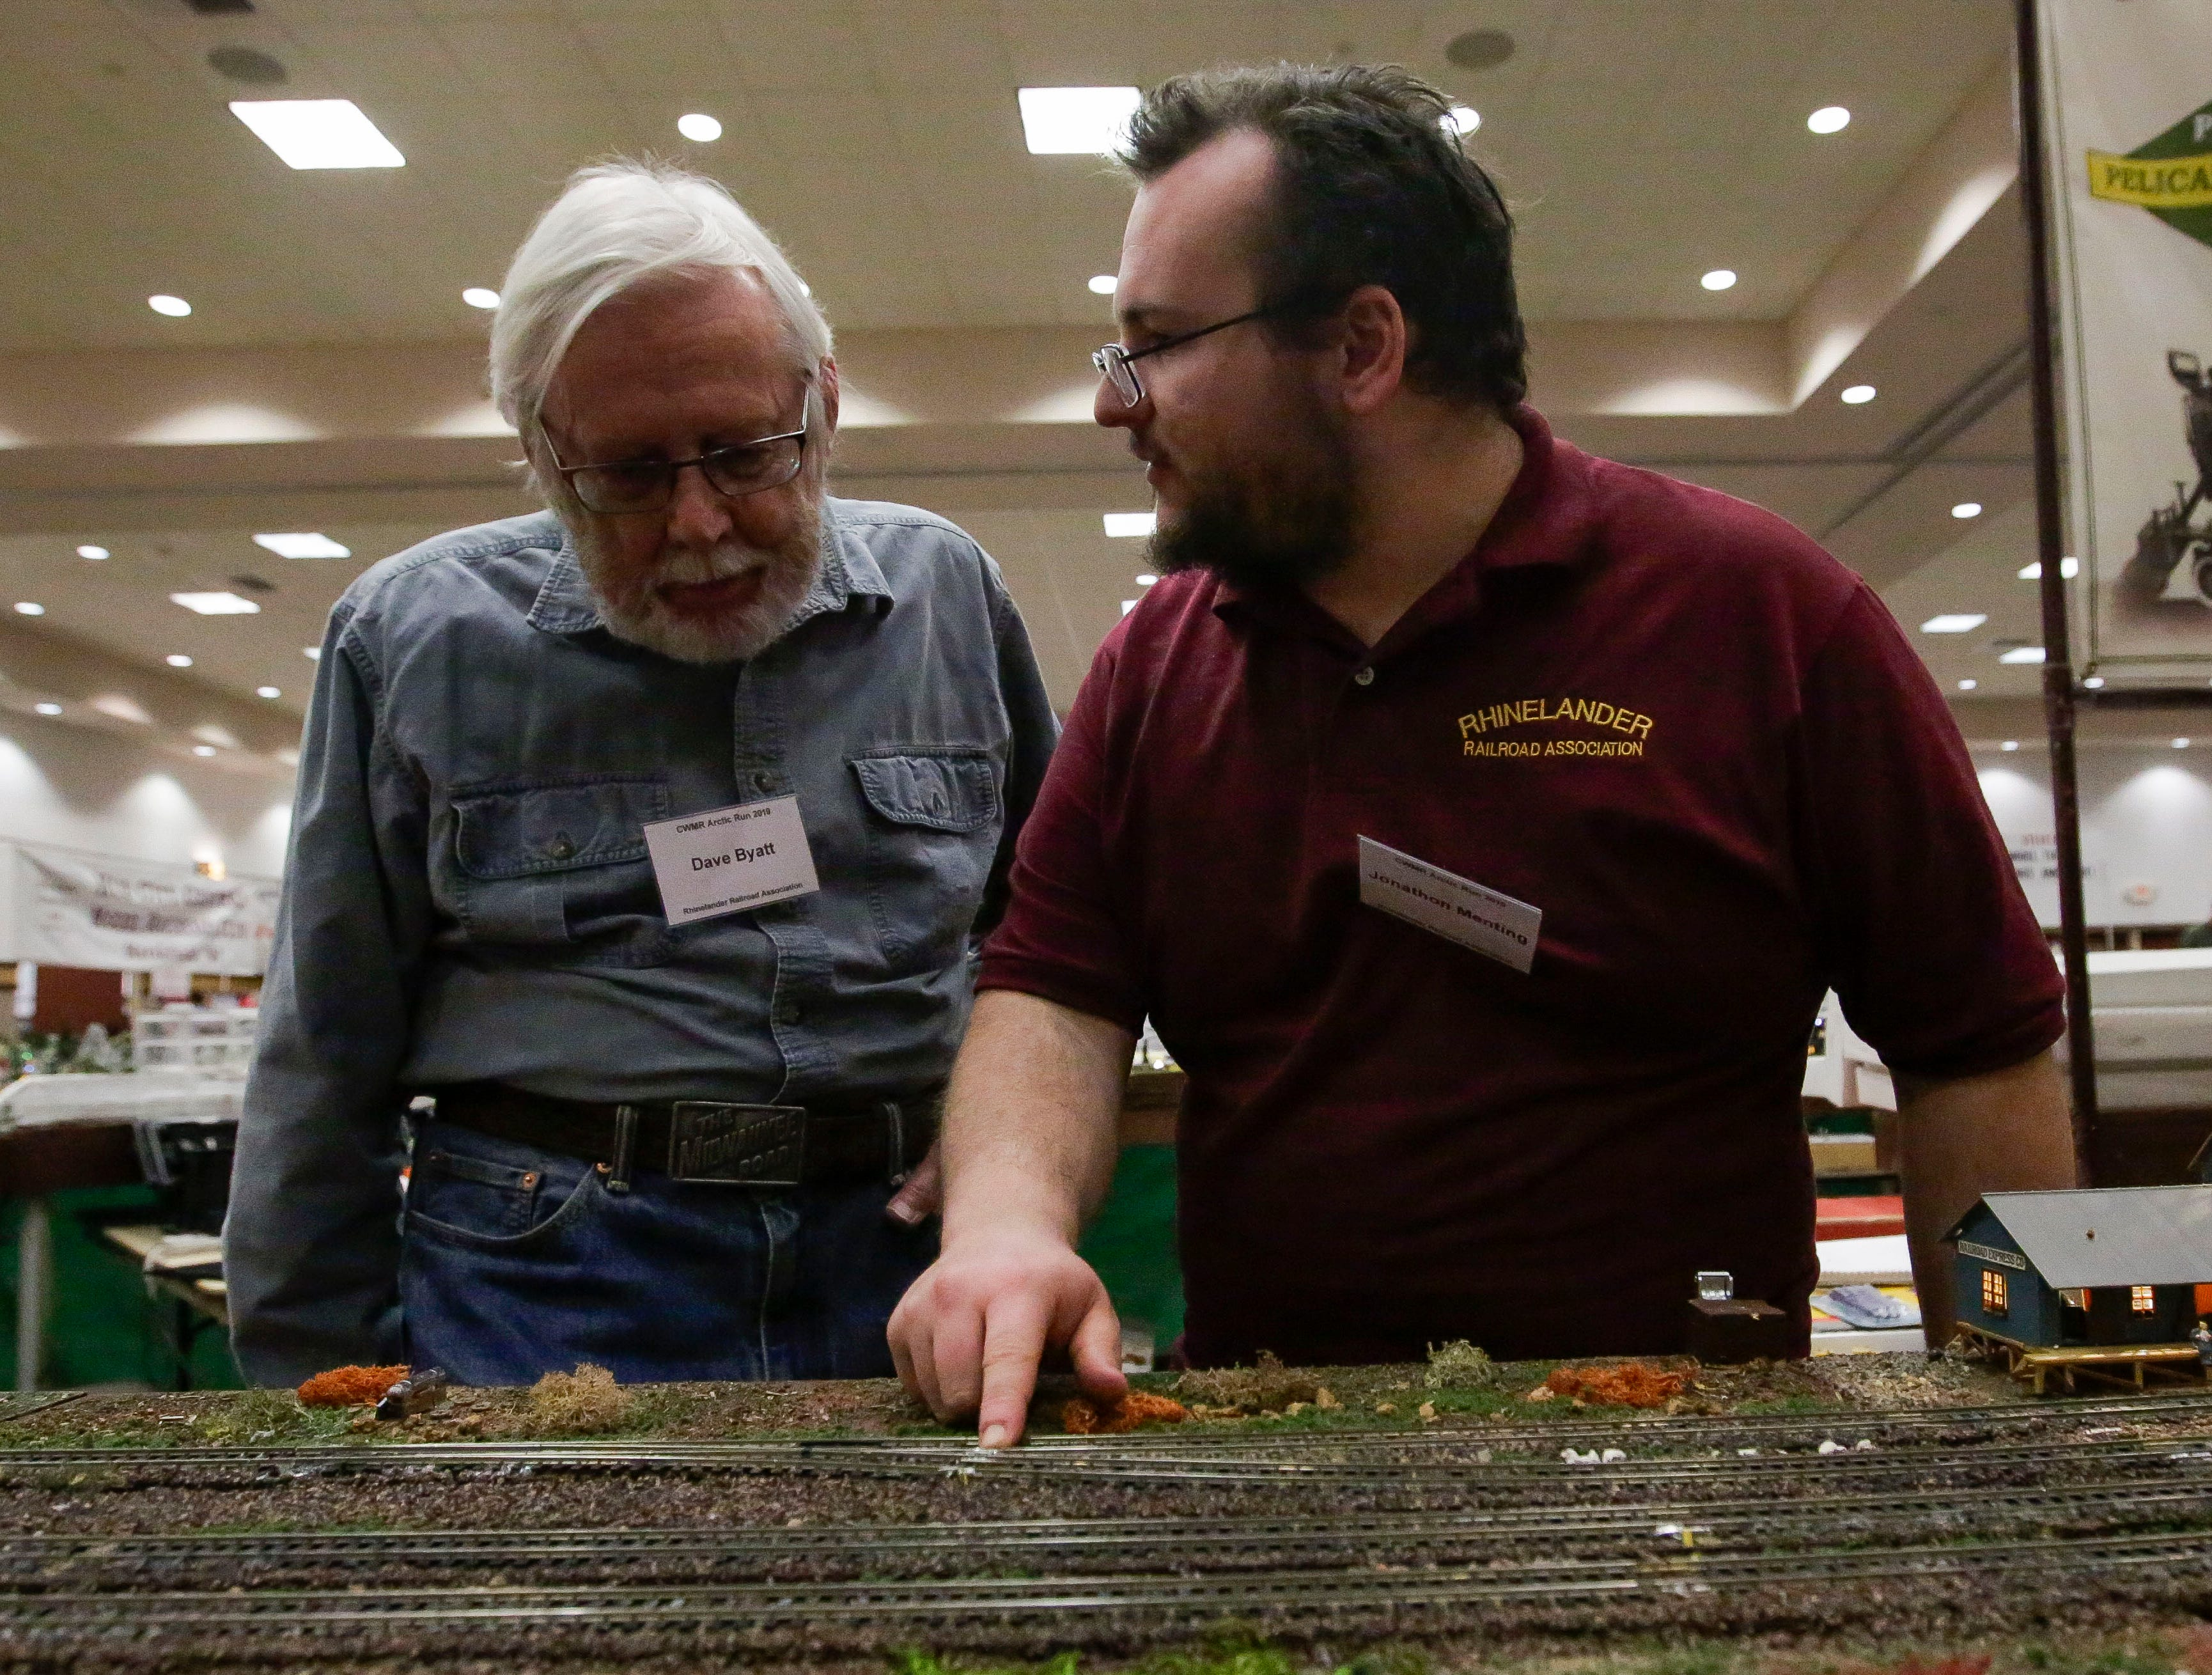 Dave Byatt and Jonathon Menting of the Rhinelander Railroad Association tend to their model train display on Sunday, February 3, 2019, during the Arctic Run Model Railroad Show at the Holiday Inn Convention Center in Stevens Point, Wis.Tork Mason/USA TODAY NETWORK-Wisconsin